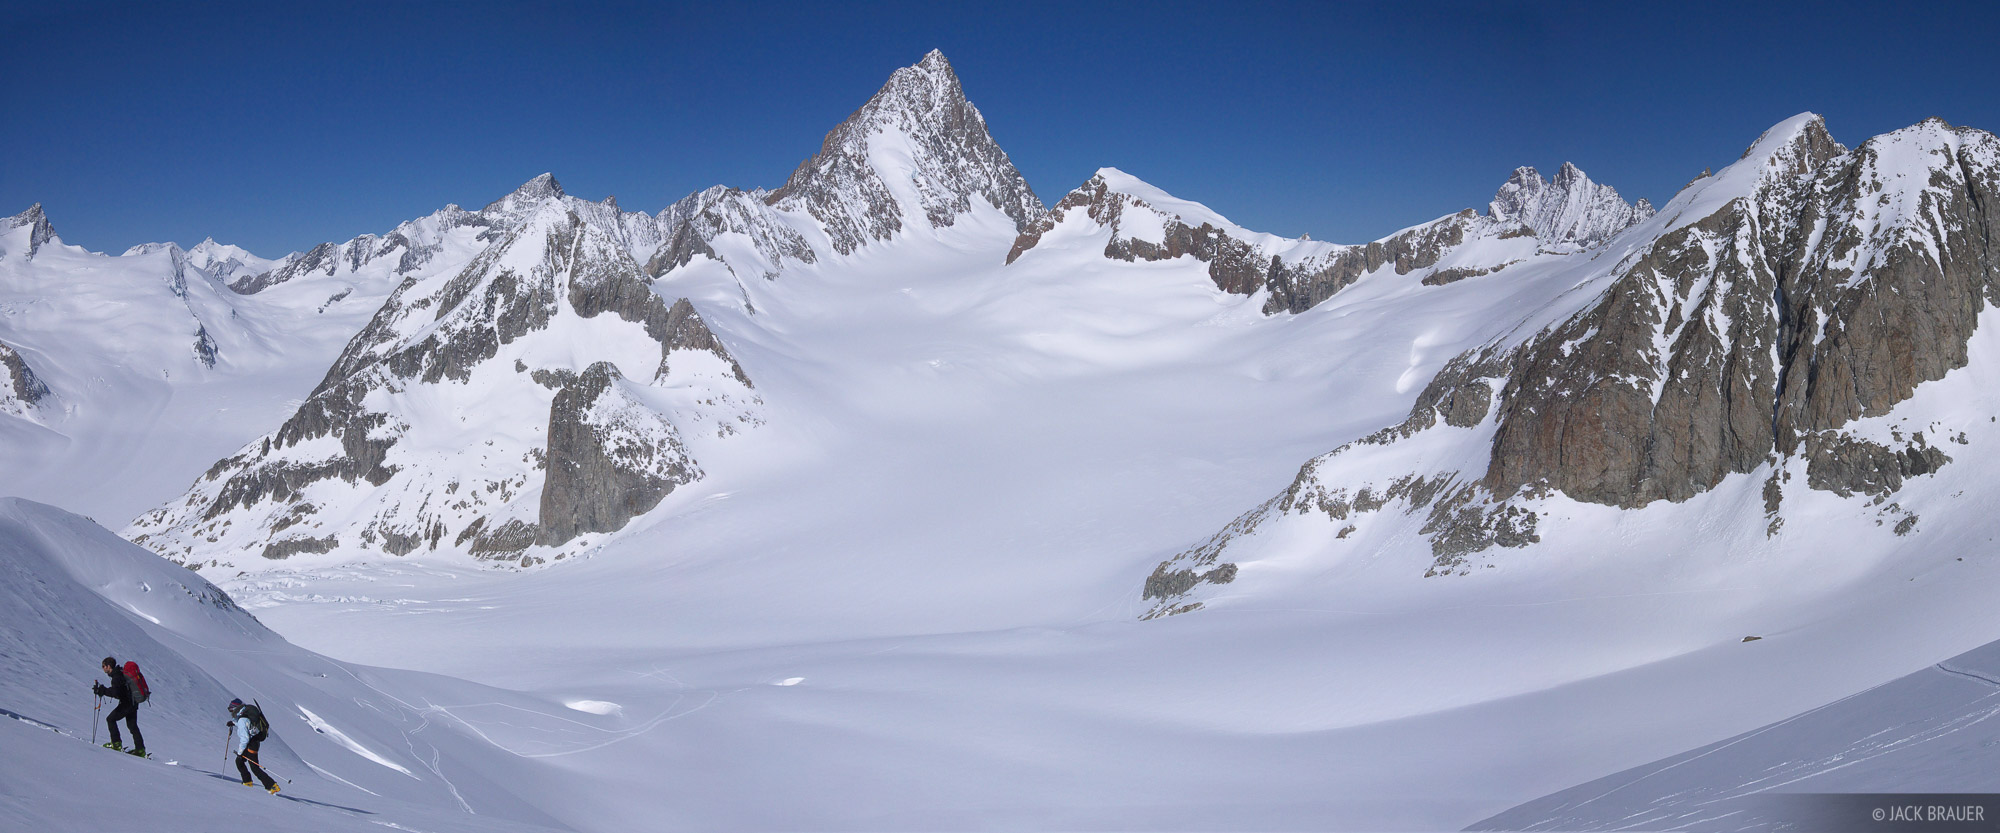 Skinning up Galmihorn, with a spectacular backdrop of the Finsteraarhorn (4273m).